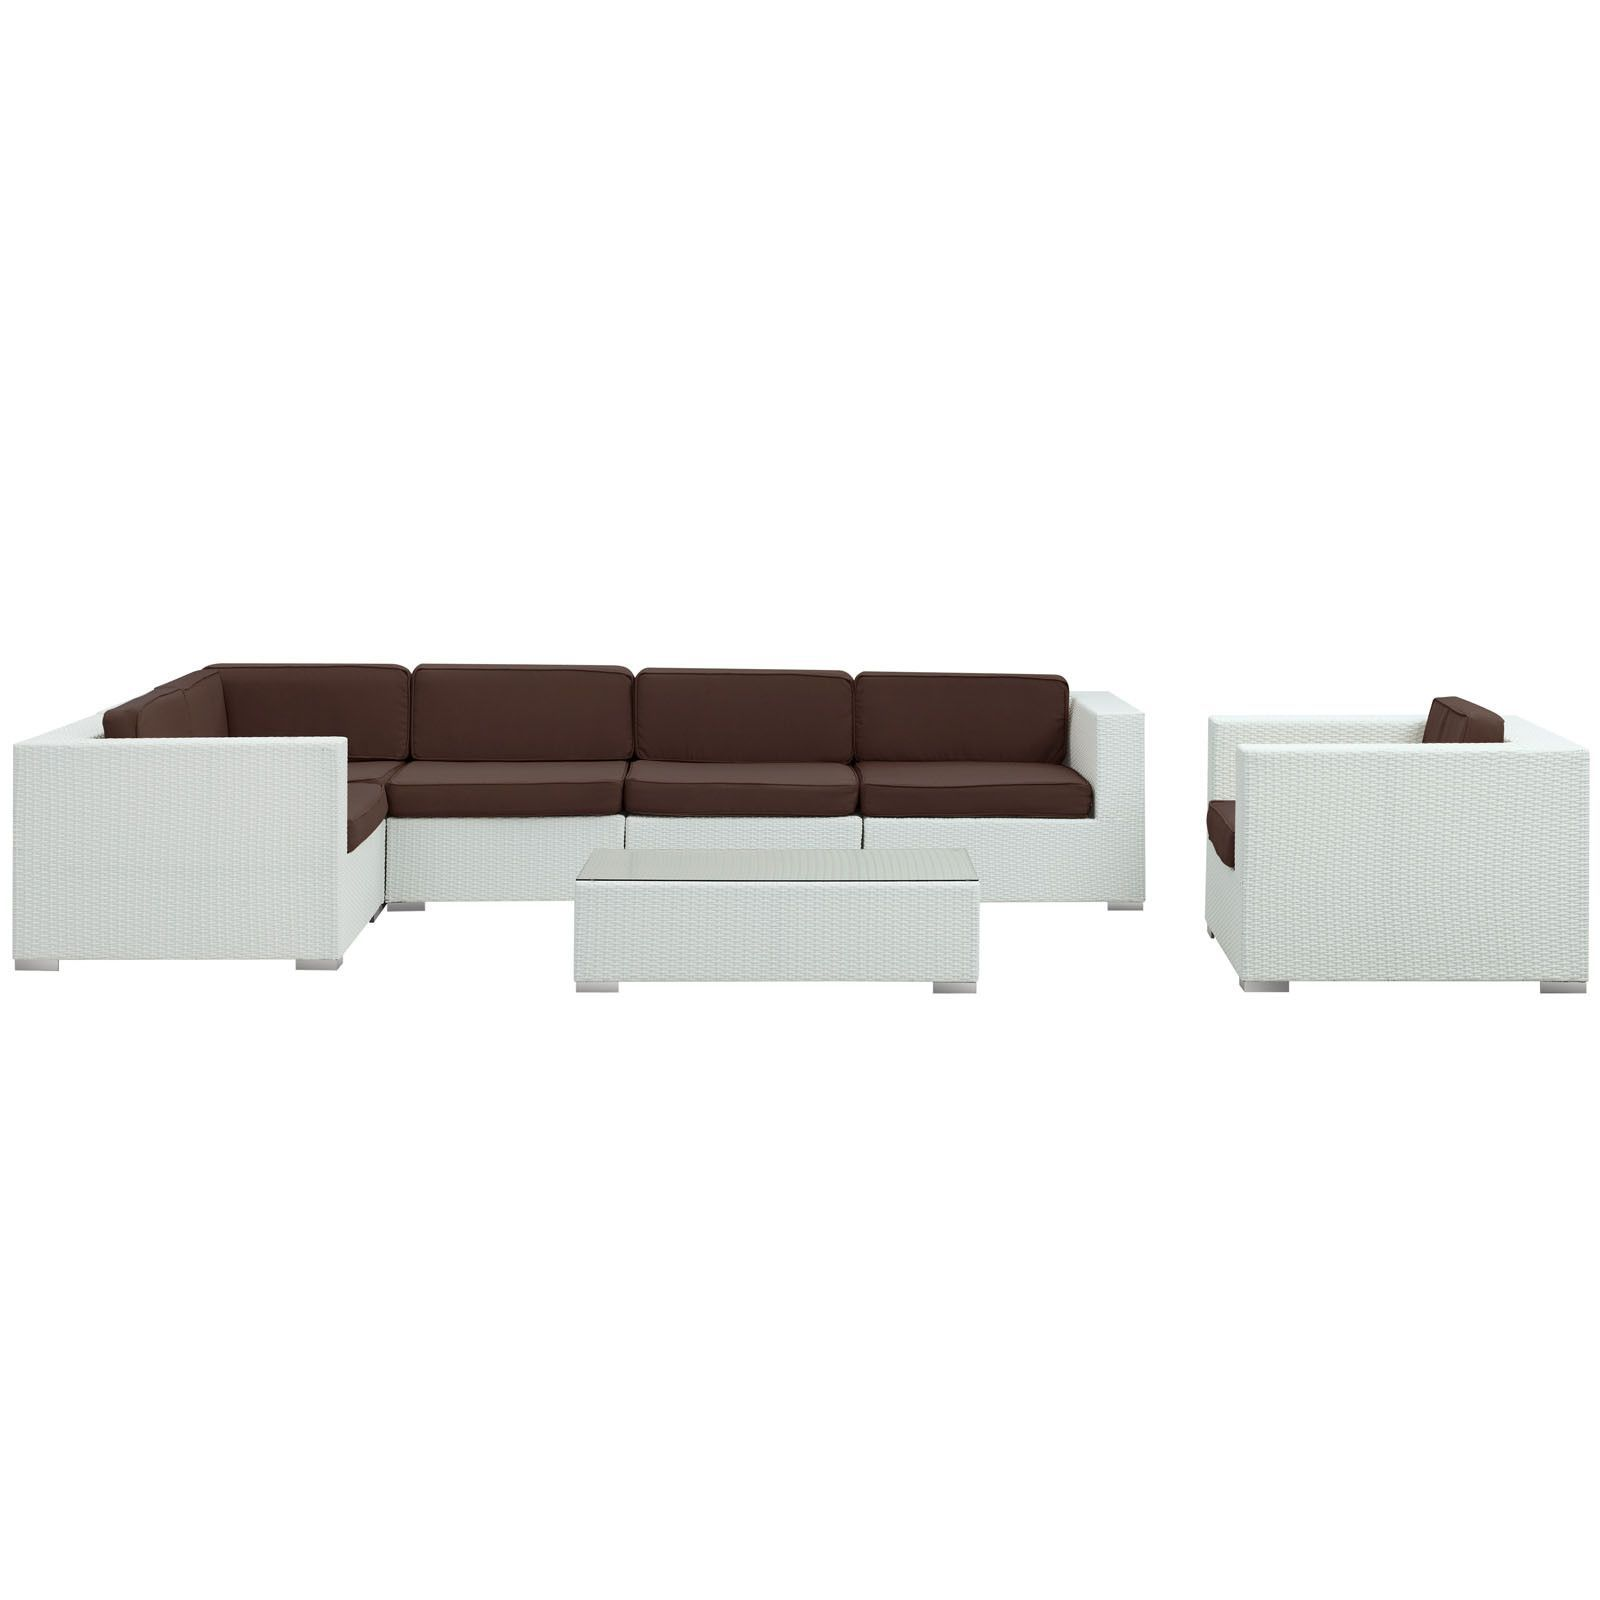 Lexmod Corona Outdoor Wicker Patio 7 Piece Sectional Sofa